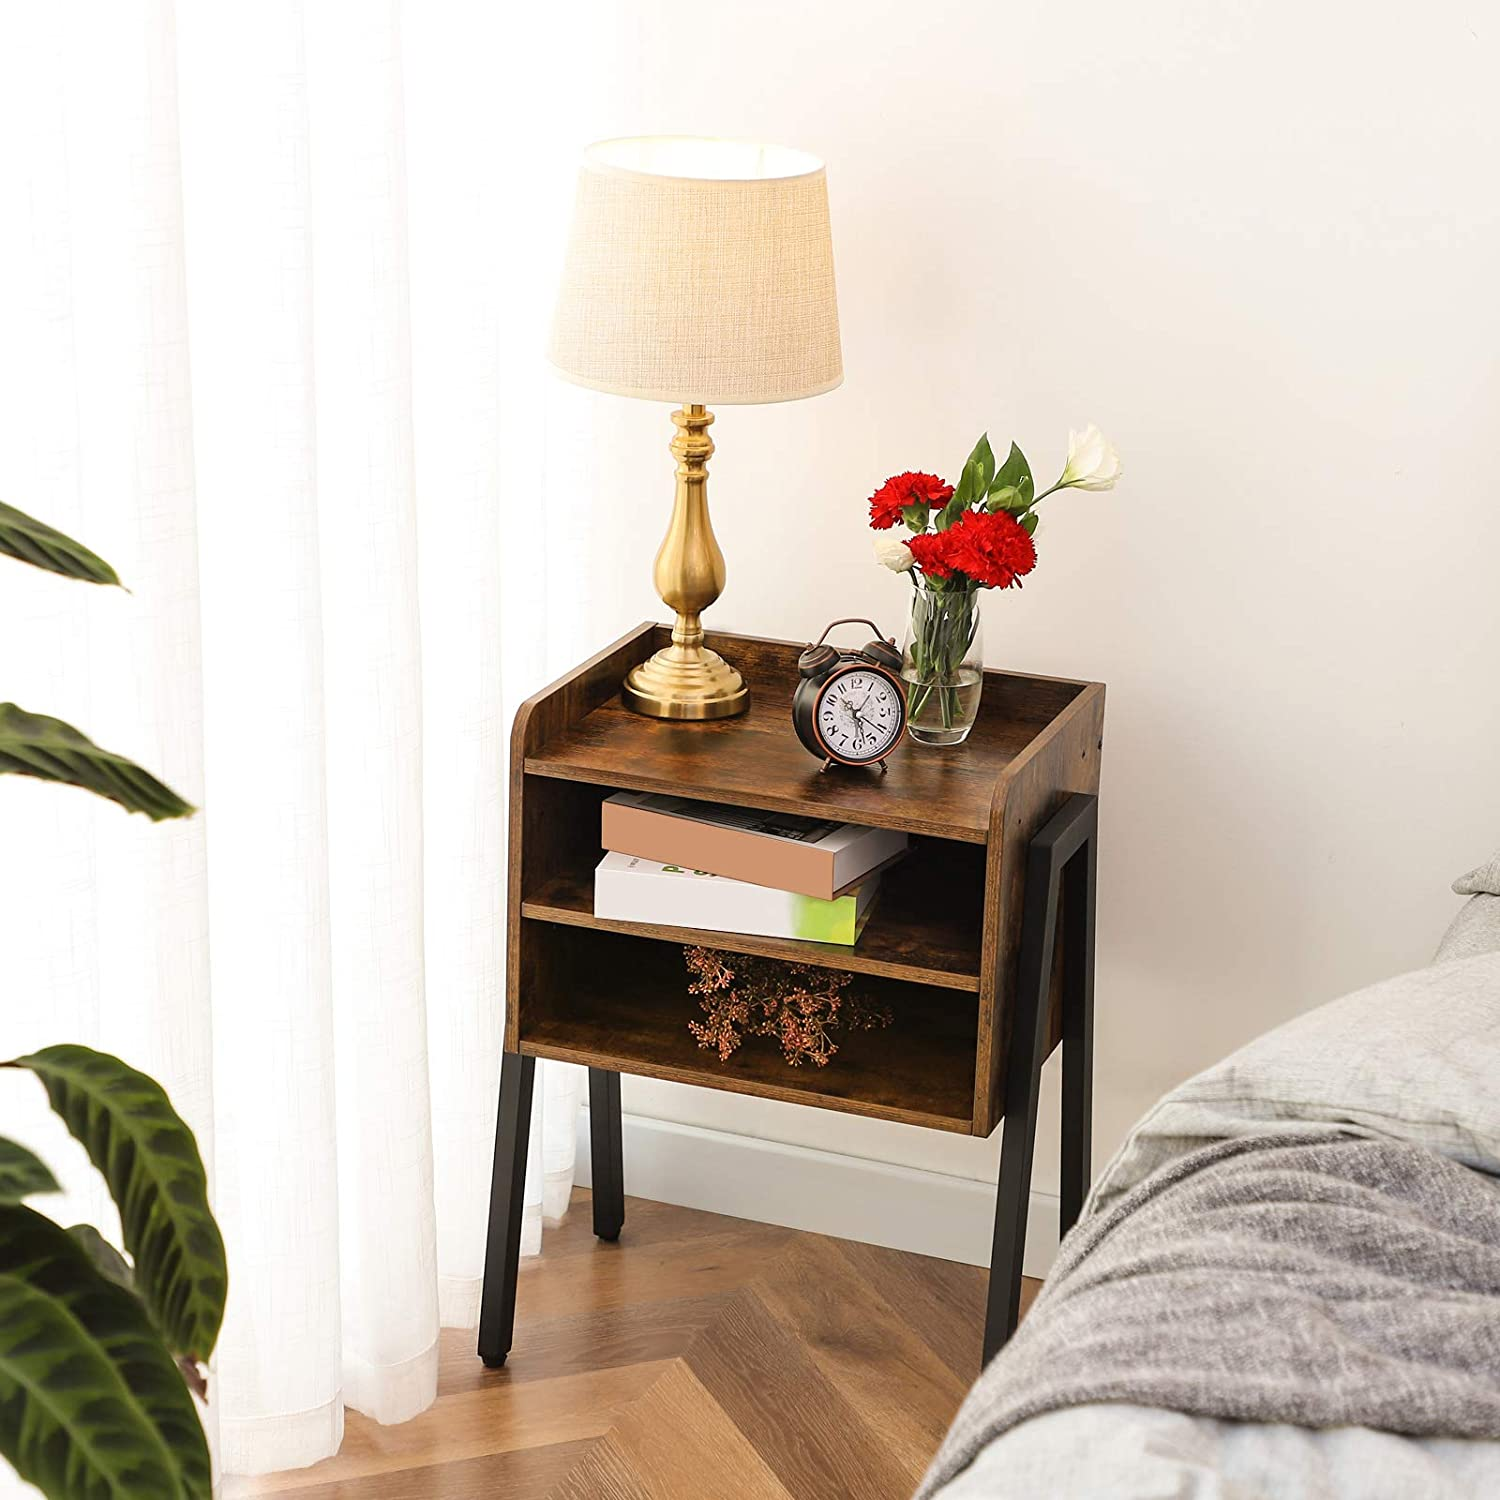 HOOBRO End Table, Stackable Nightstand, 3 Tier Side Table for Small Spaces with 2 Open Front Storage Compartments, Wood Look Accent Table with Metal Frame, Rustic Brown BF02BZ01